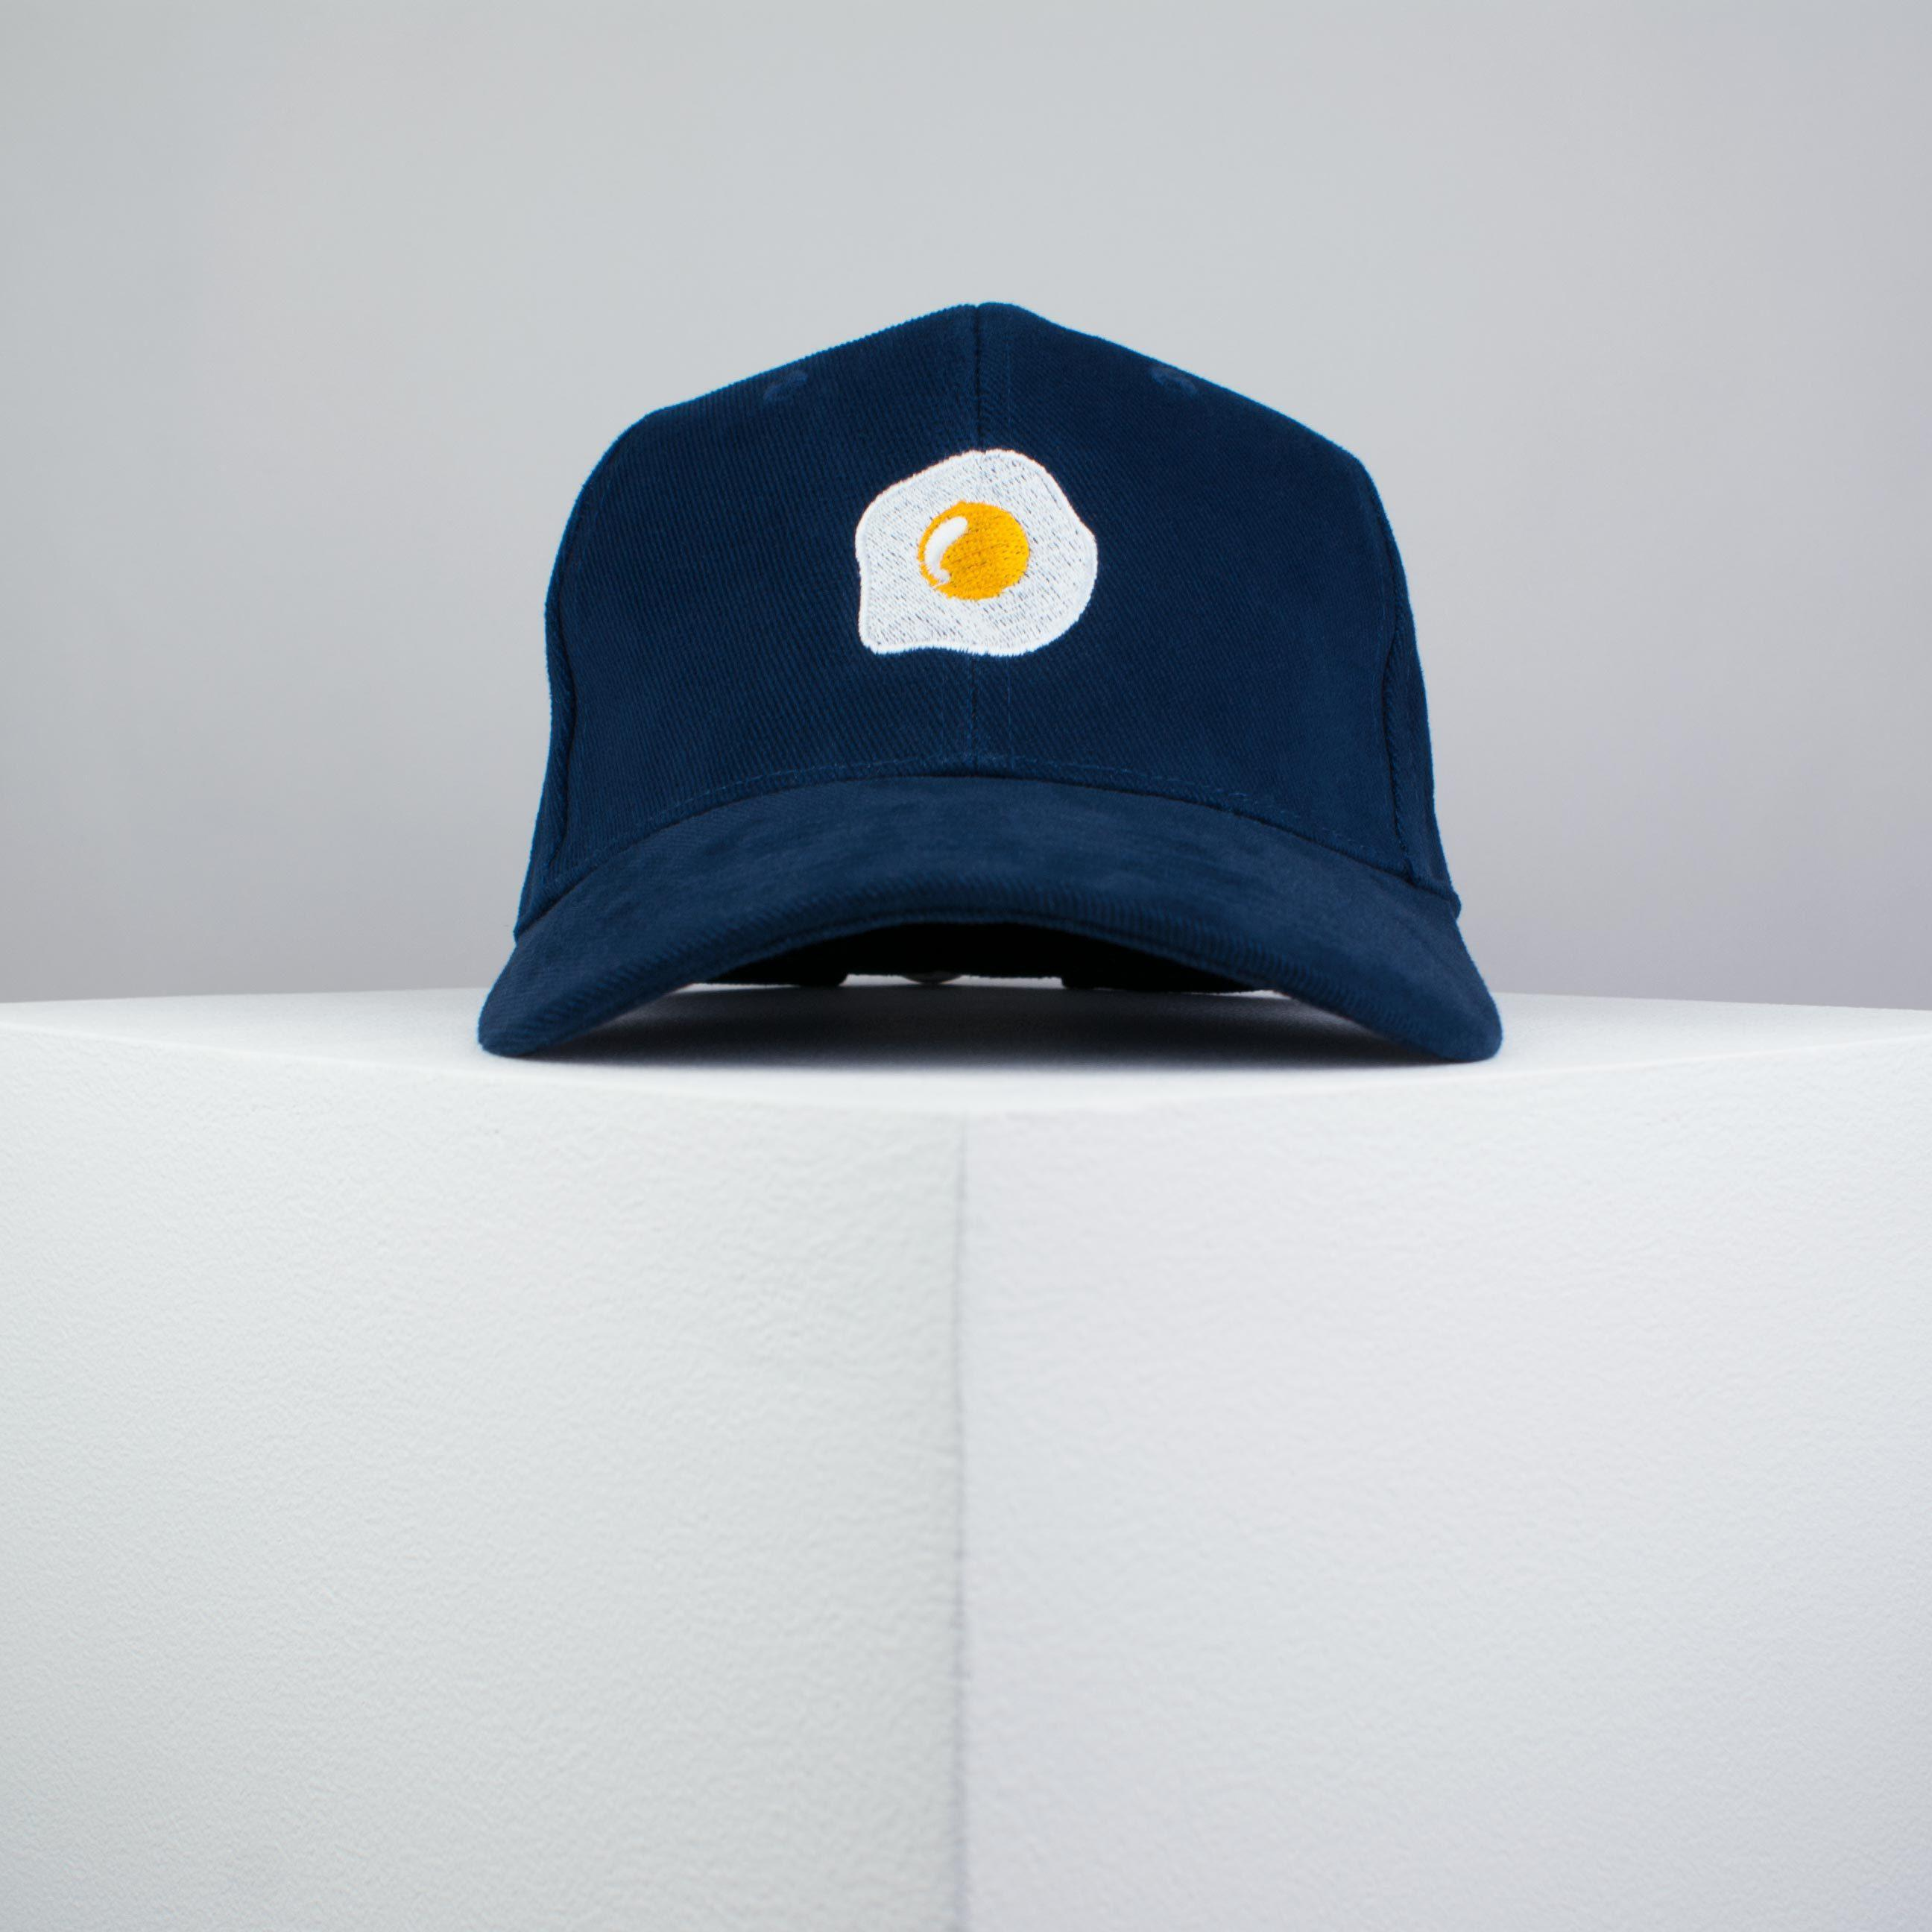 ... Fried egg embroidered baseball cap navy   food   patches   egg    embroidery   patch ... ce80444f4ed7